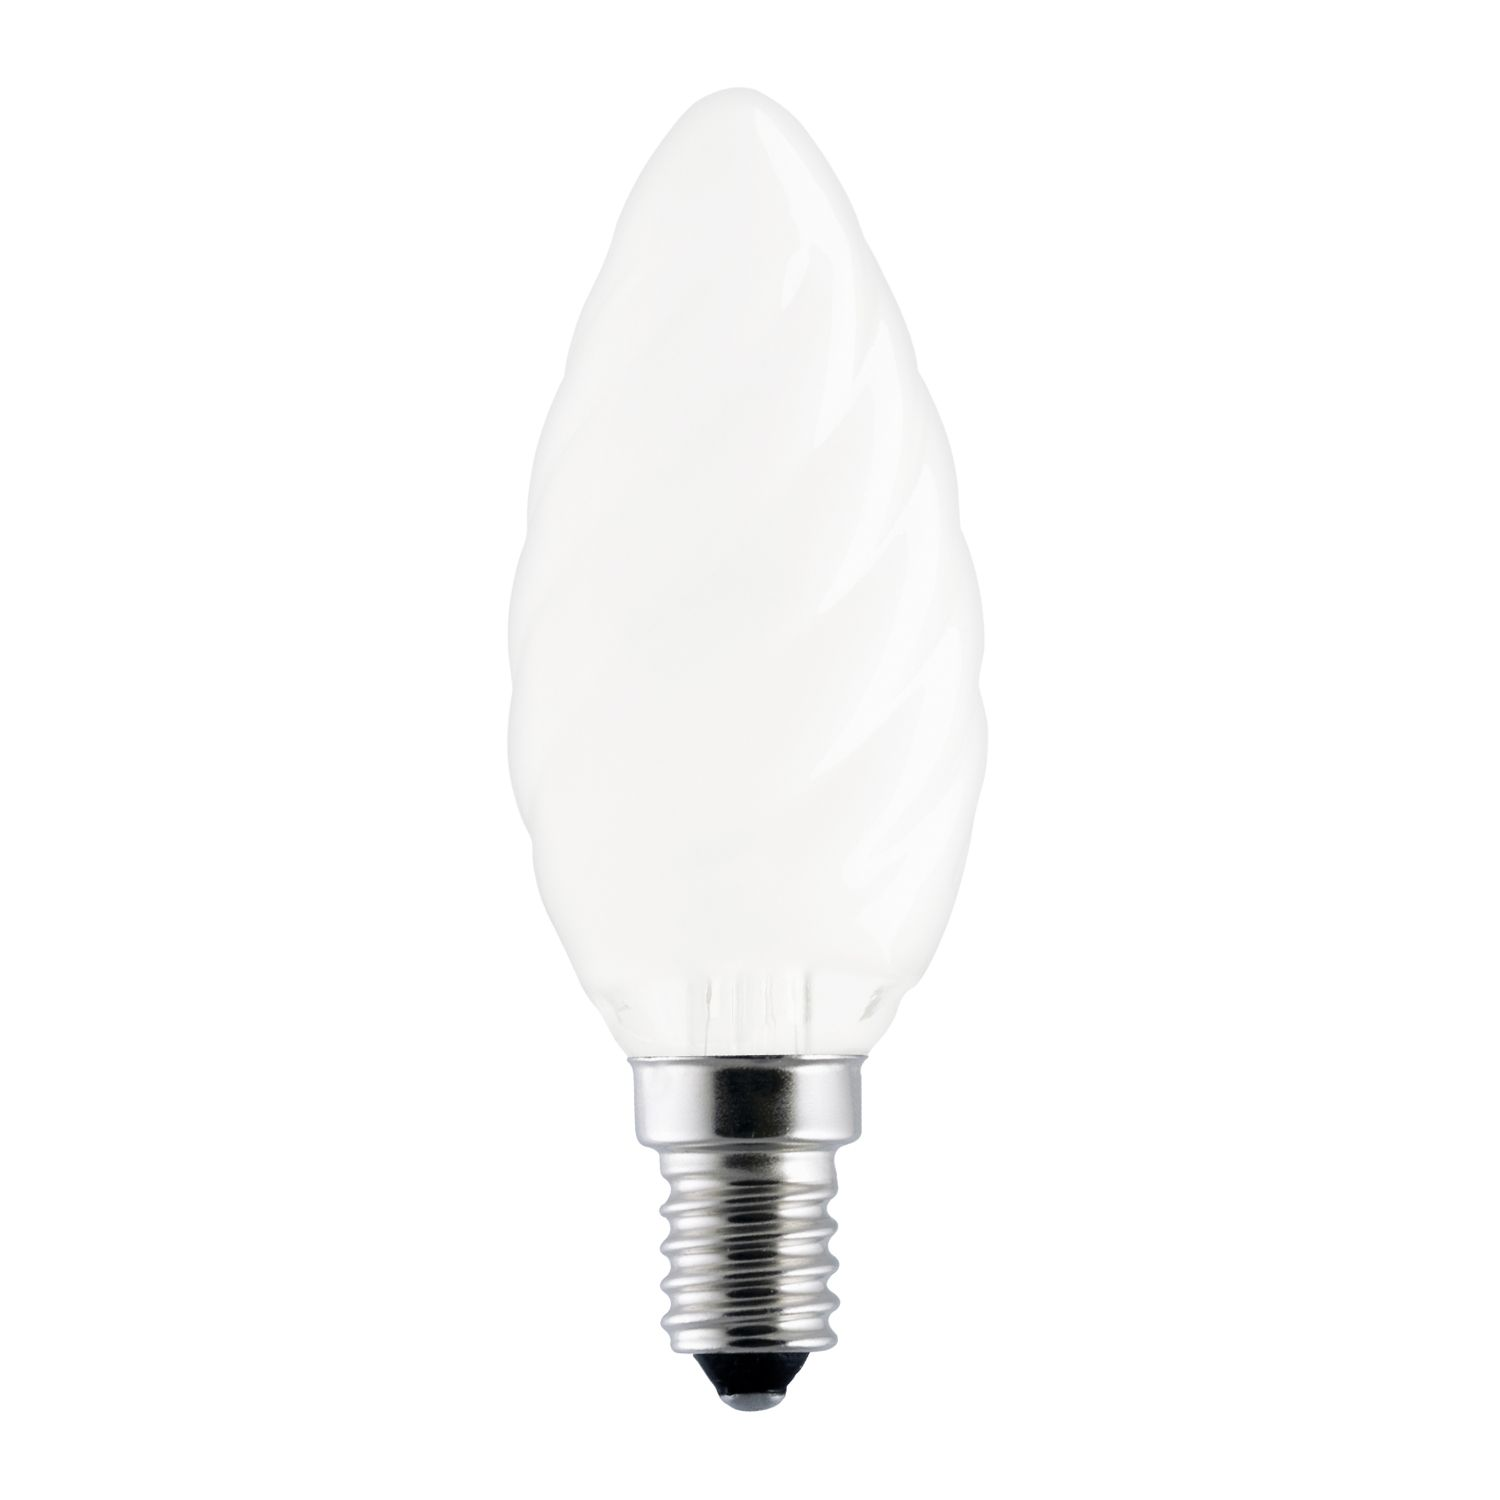 Standard Incandescent Twisted Candle Frosted BF35 E14 25W 230V